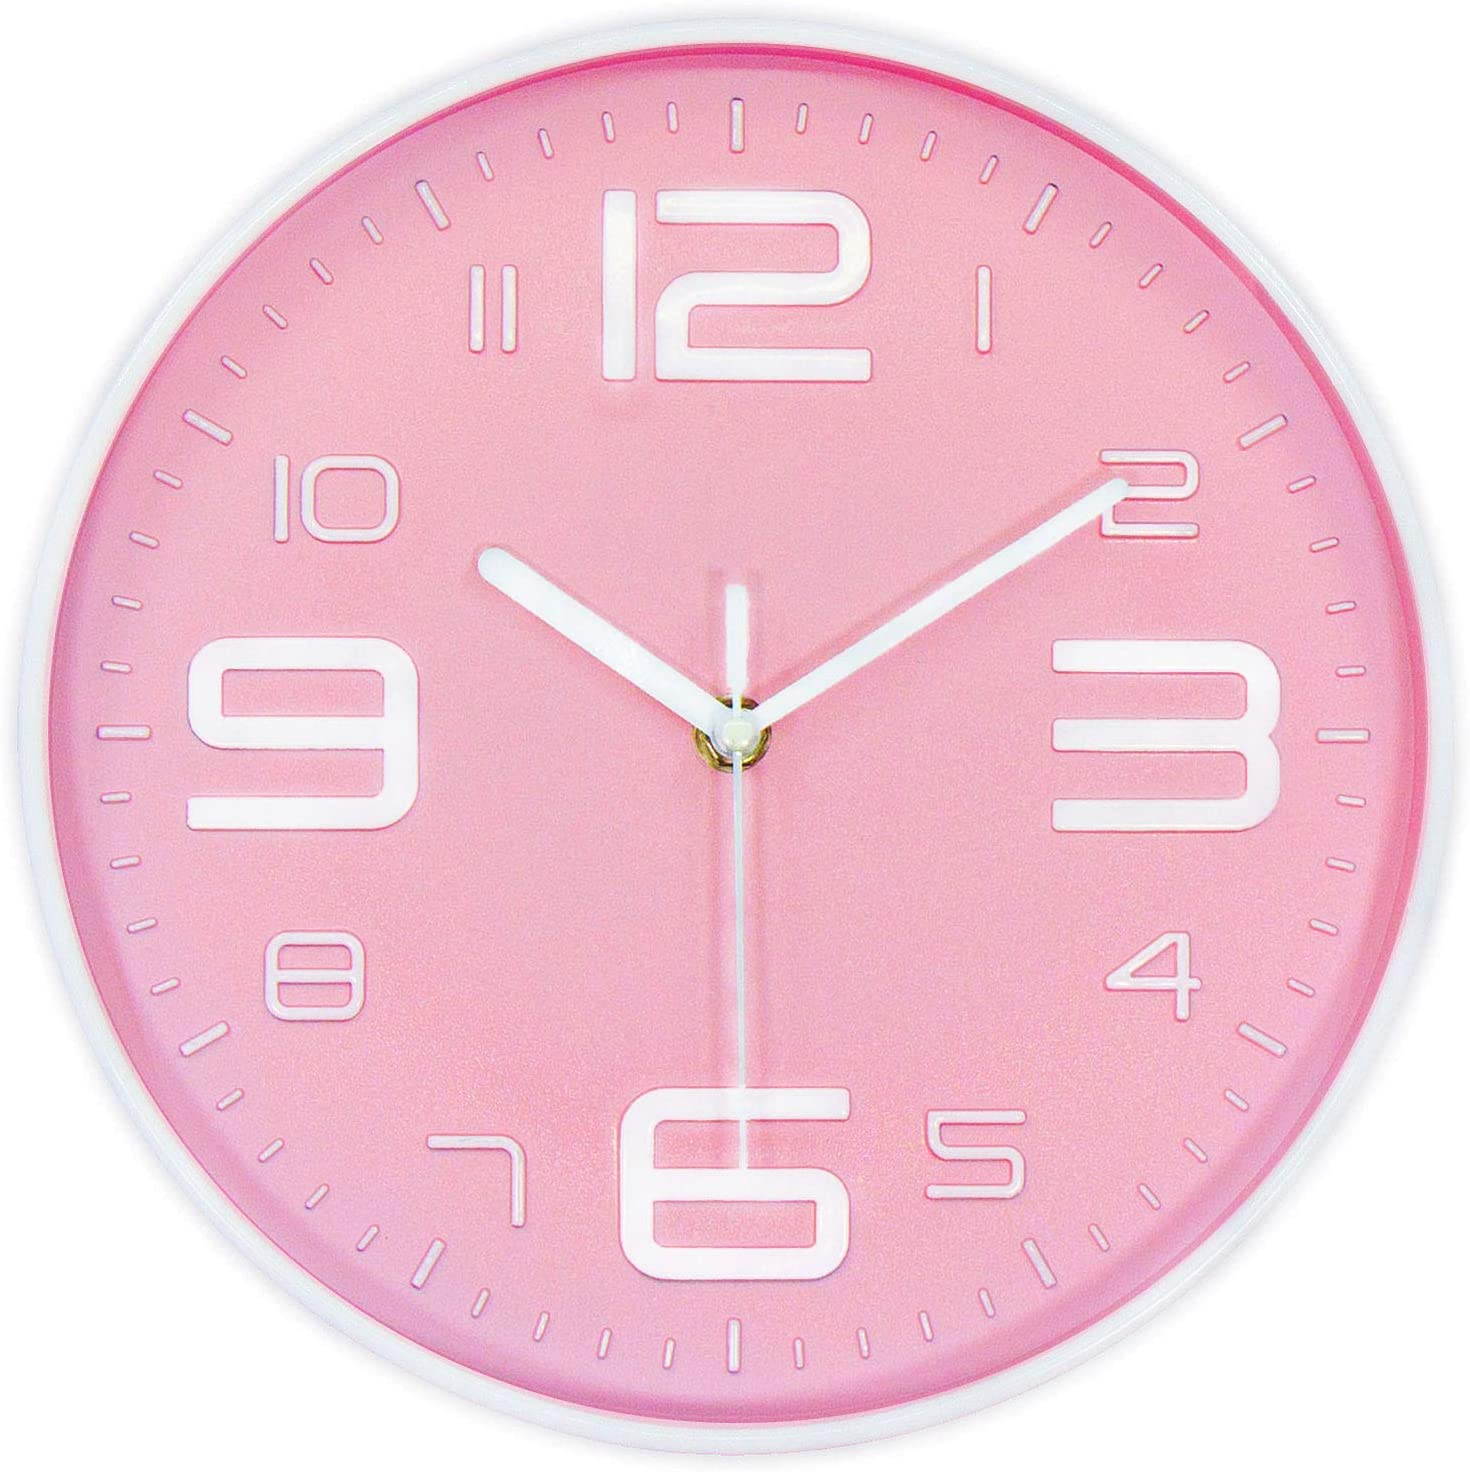 45Min 10 Inch 3D Number Dial Face Modern Wall Clock, Silent Non-Ticking Round Home Decor Wall Clock with Arabic Numerals, Colorful Dial Face (Pink)